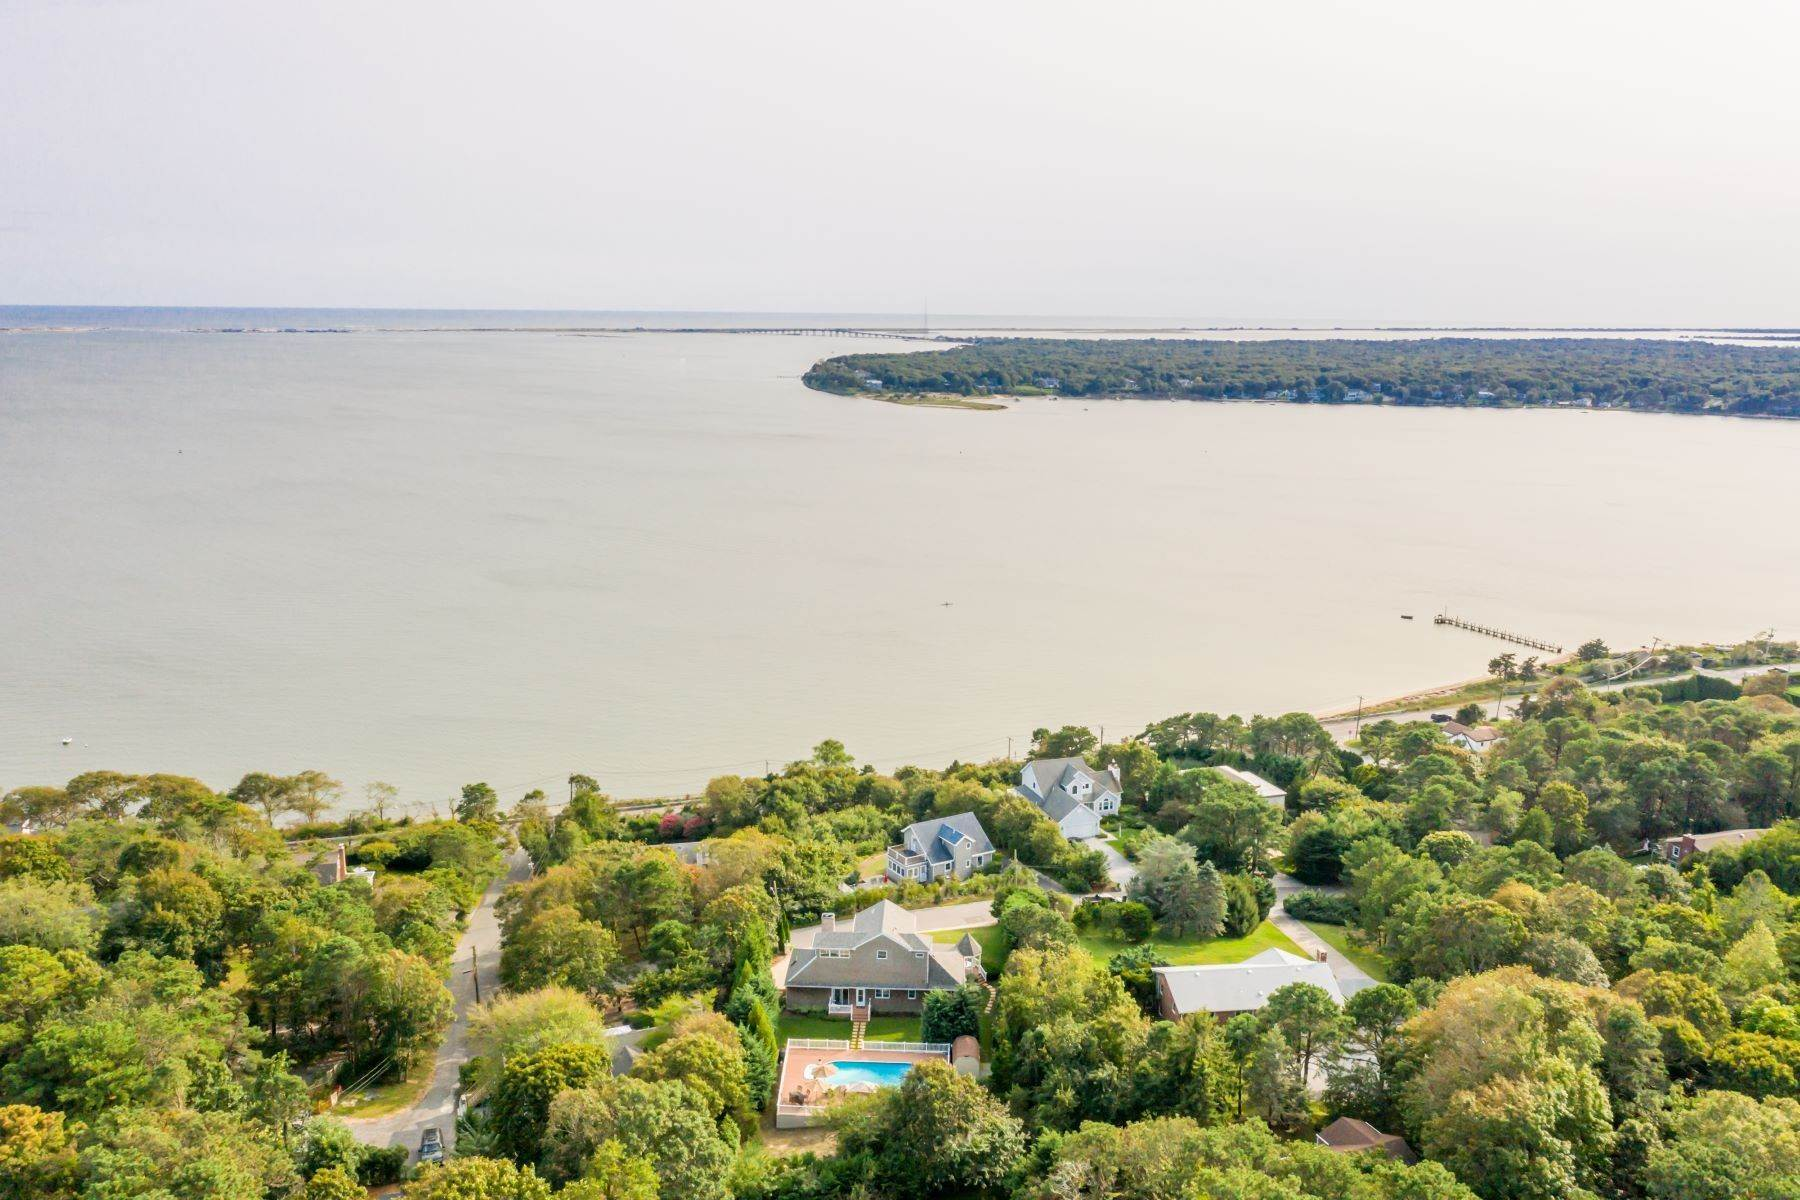 Single Family Homes for Sale at SHINNECOCK BAY VIEWS 5 High Road Hampton Bays, New York 11946 United States